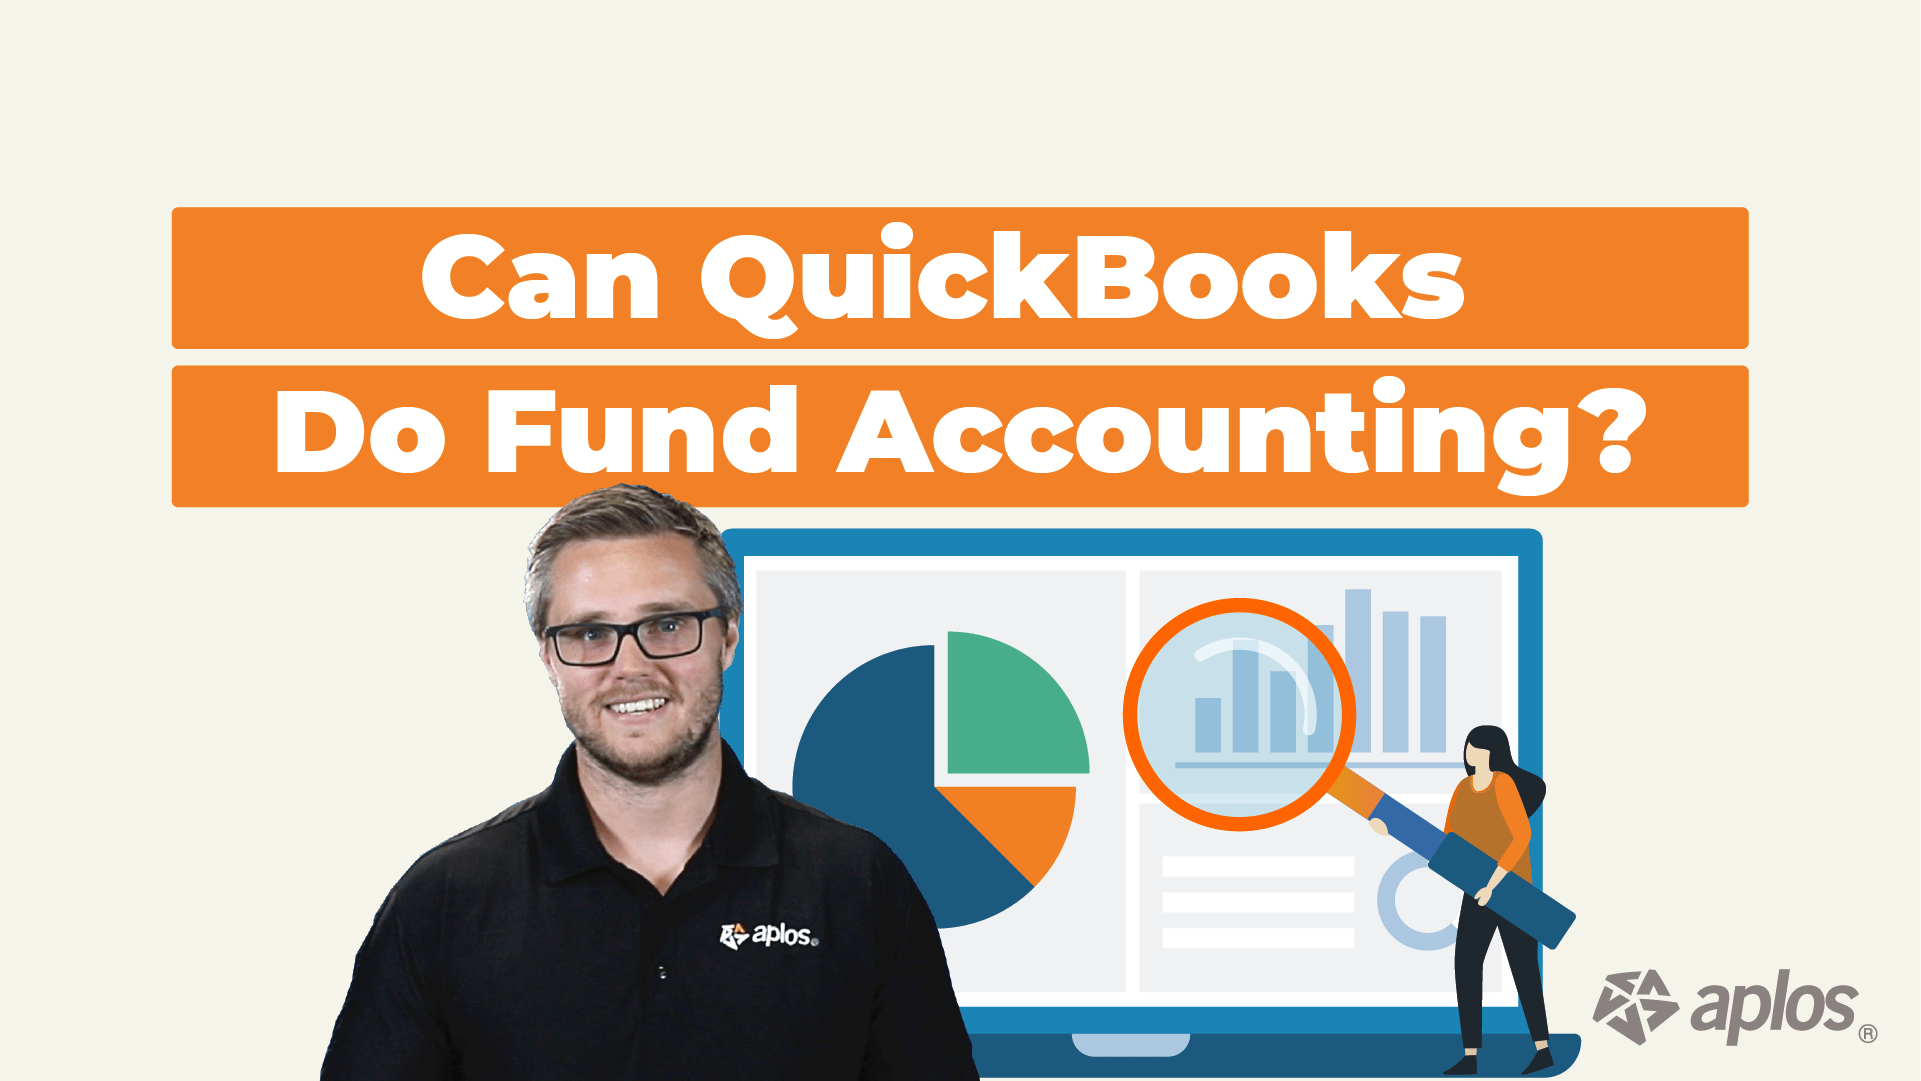 QuickBooks and Fund Accounting